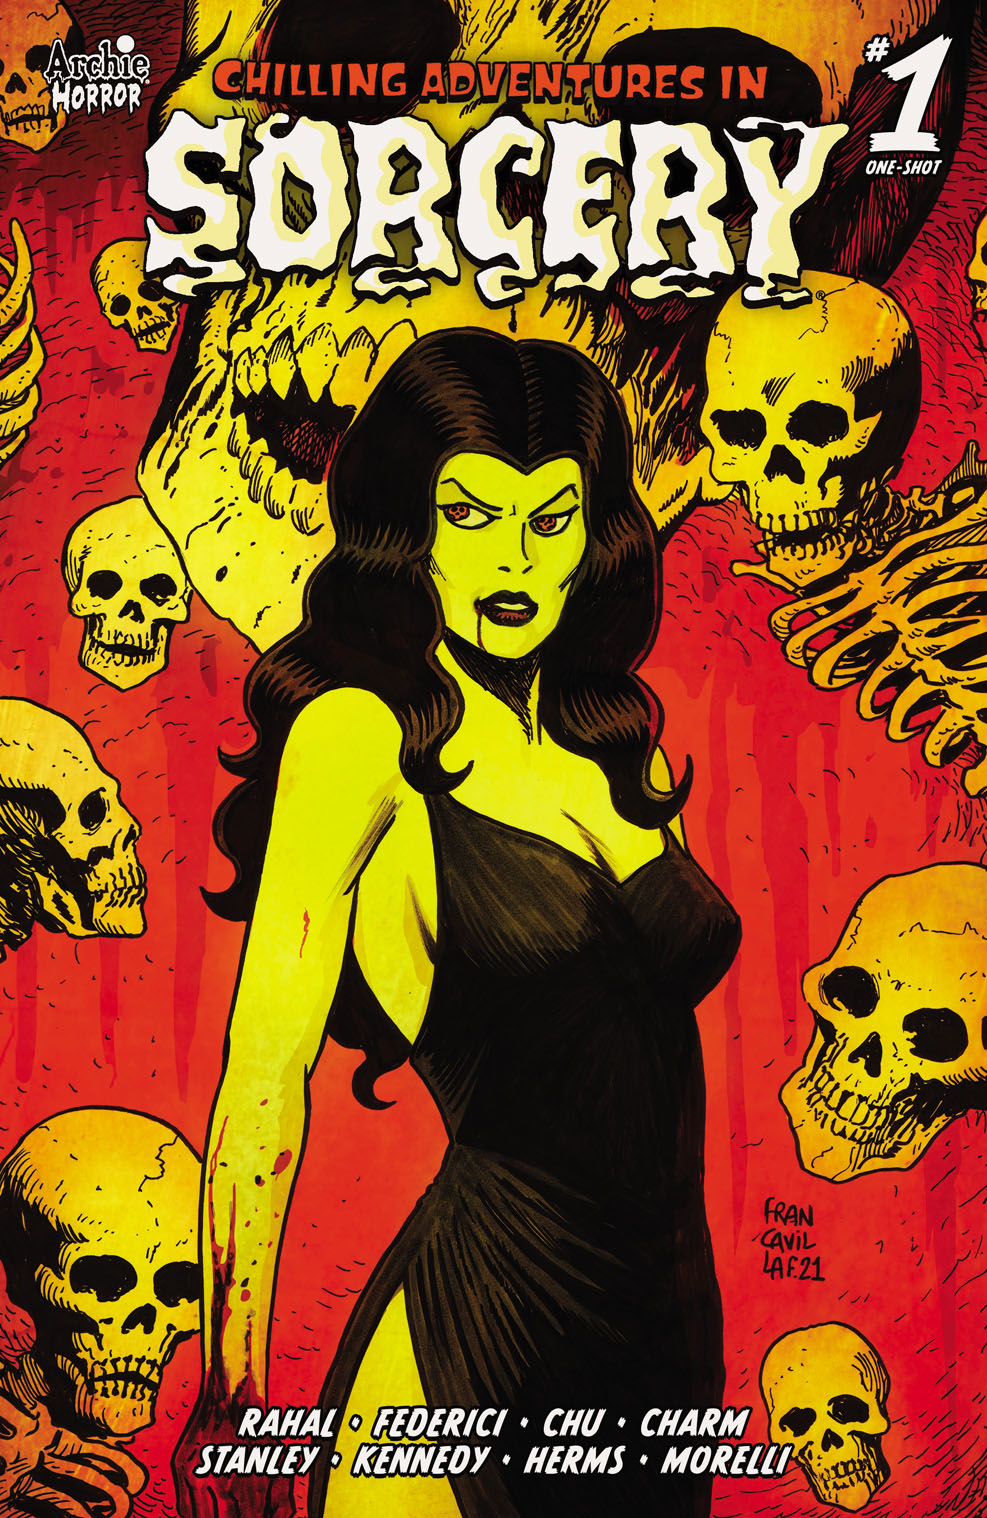 Sorcery1Variant-FF Archie Comic Publications November 2021 Solicitations